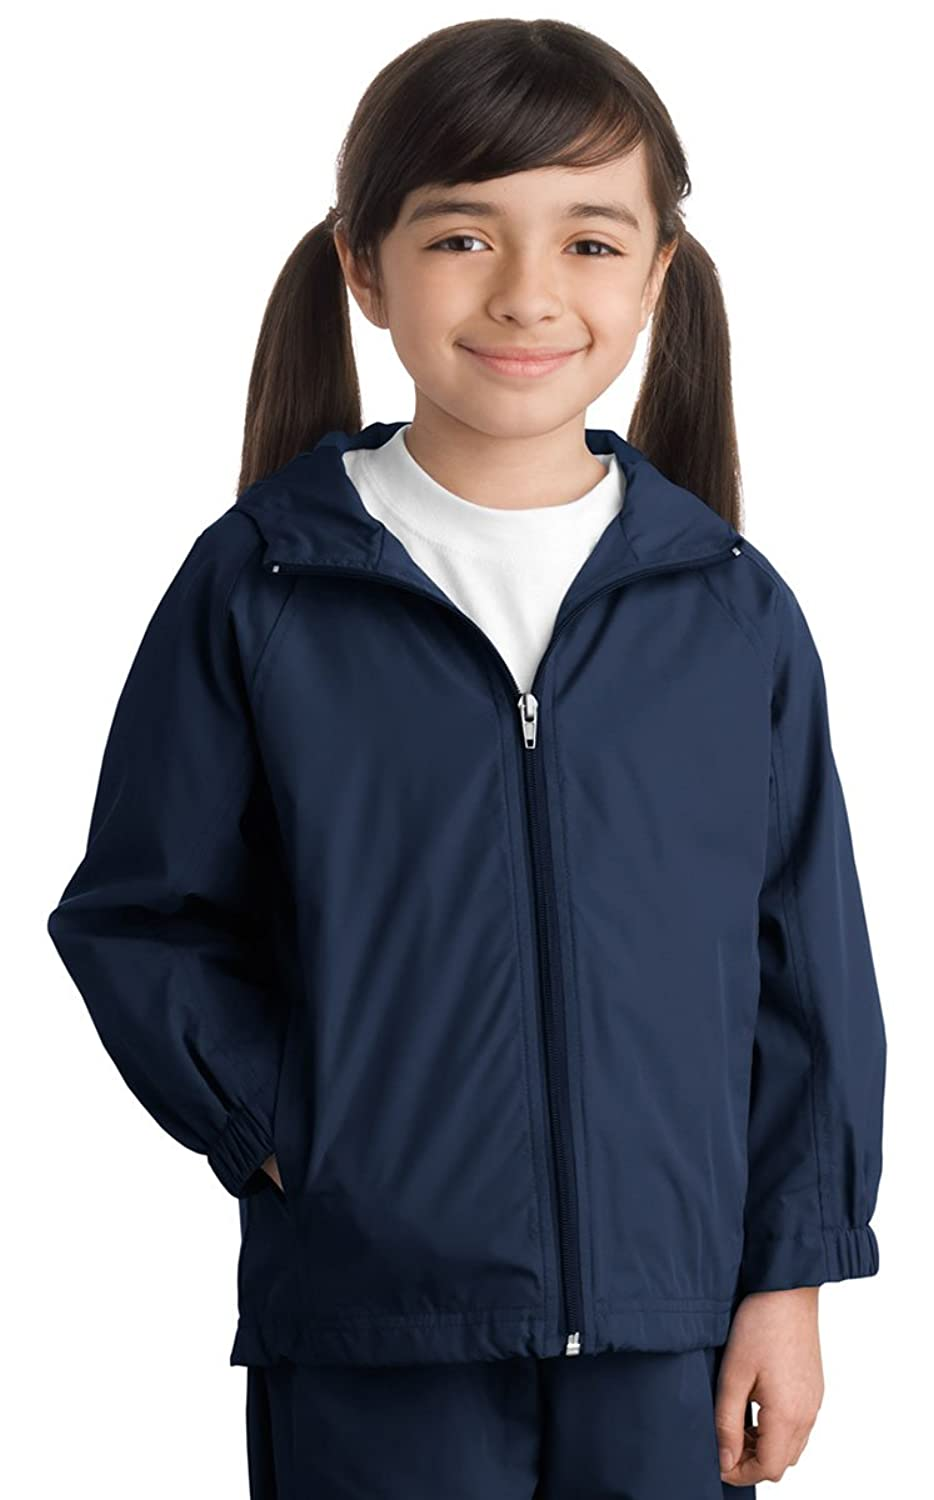 Sport-Tek Youth Hooded Raglan Jacket